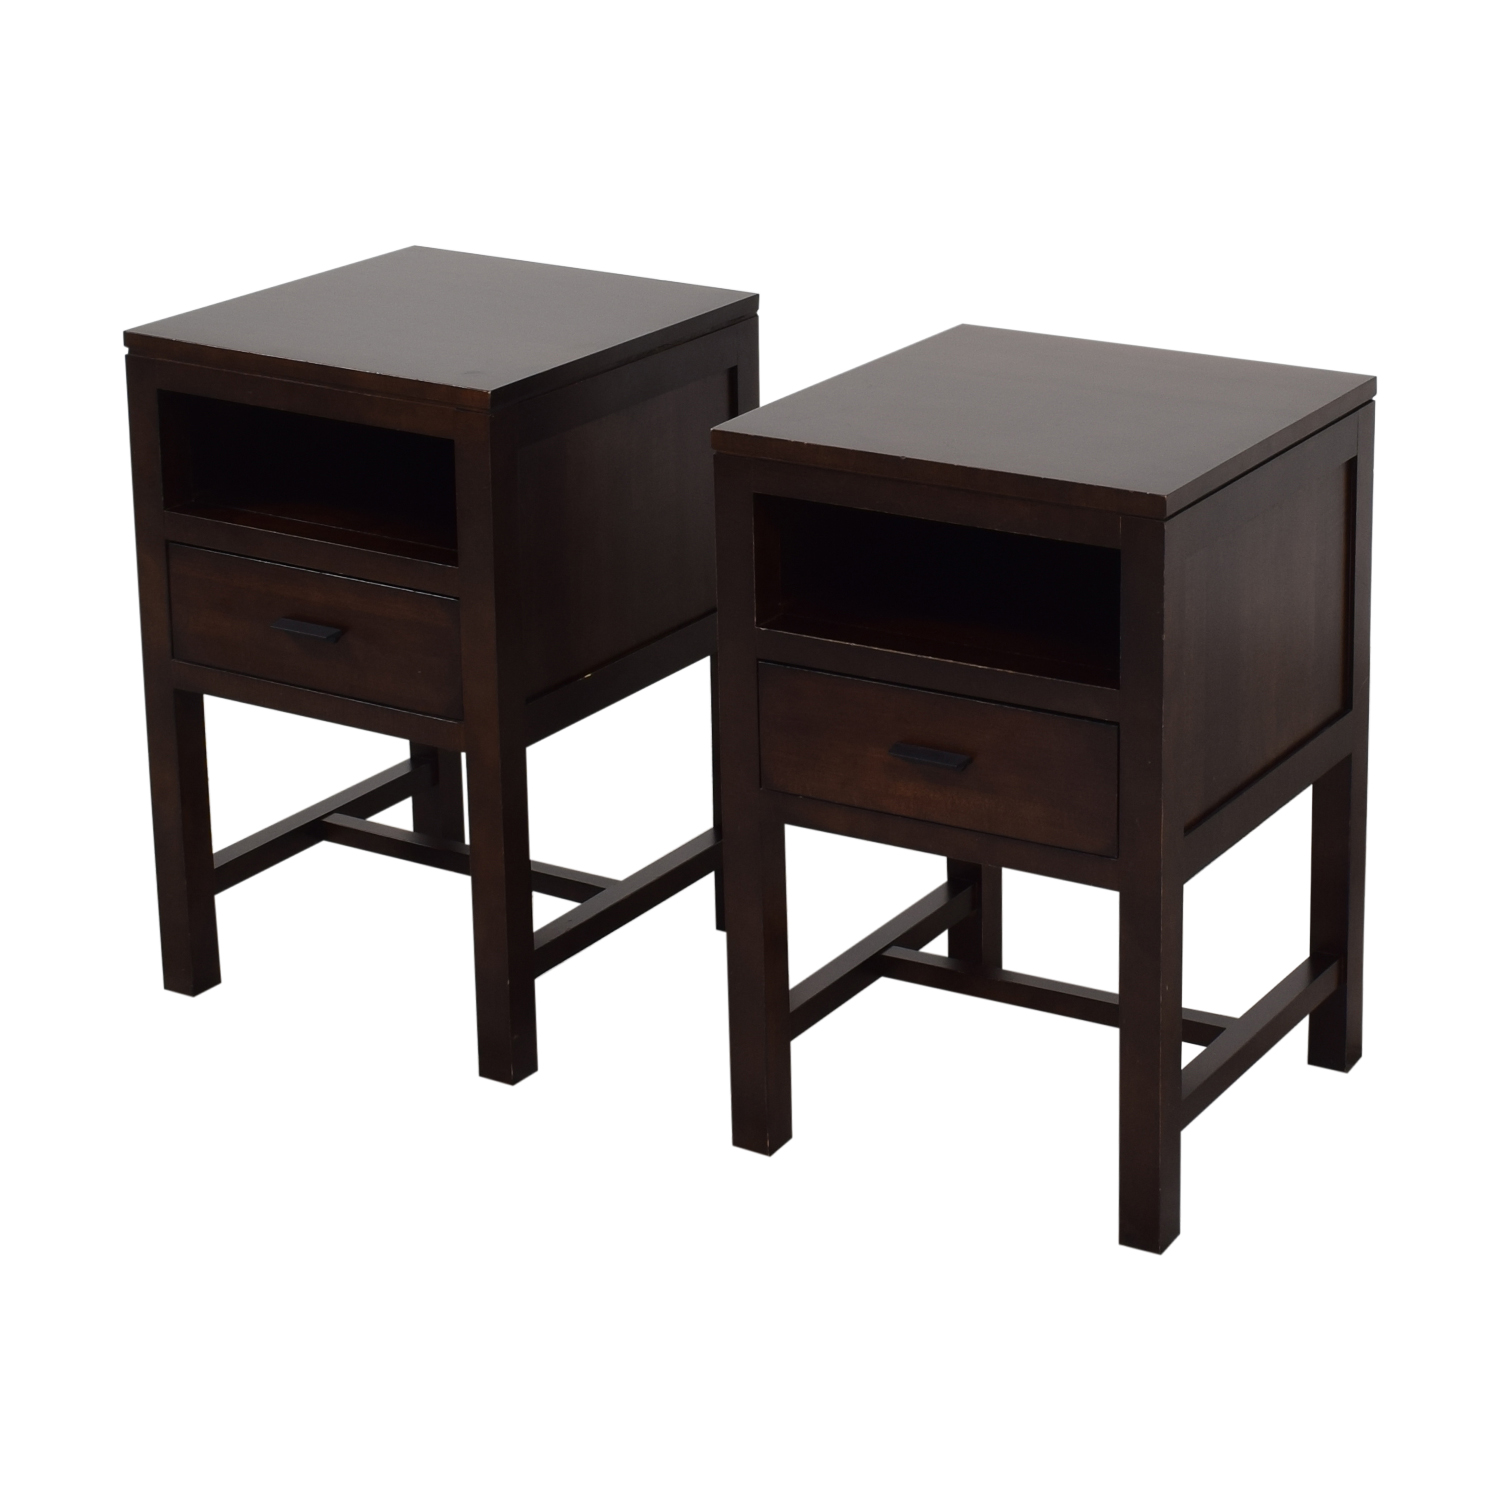 buy Durham Furniture Durham Furniture Maple Wood Night Stands online